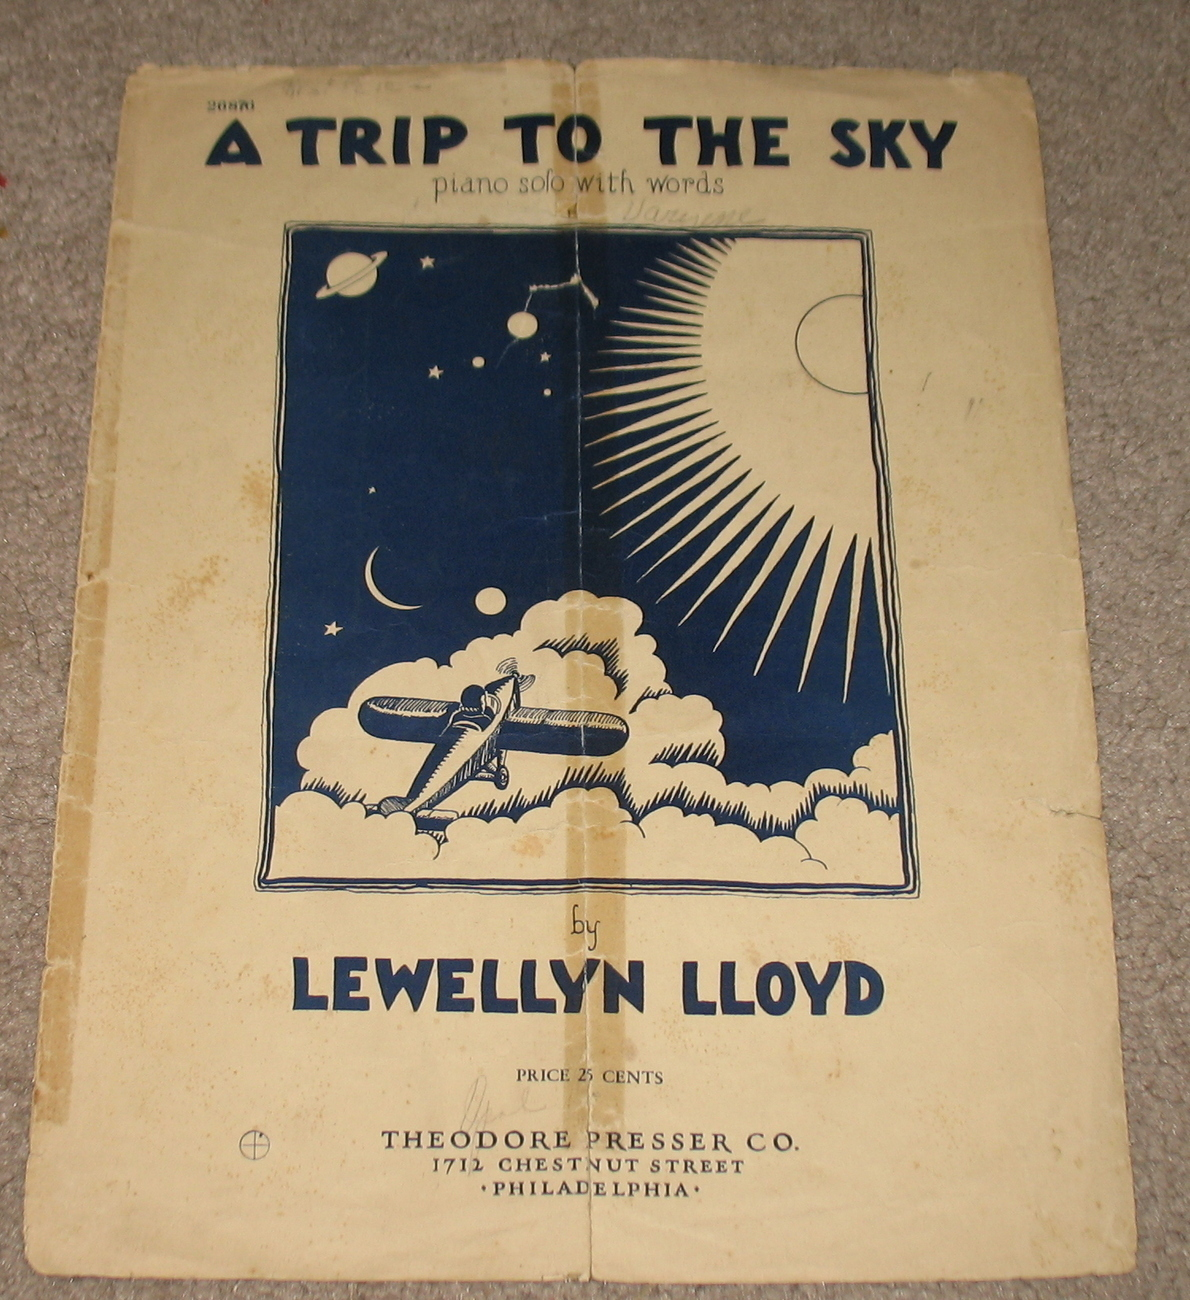 A Trip to The Sky Sheet Music Piano Solo w/ Words 1939